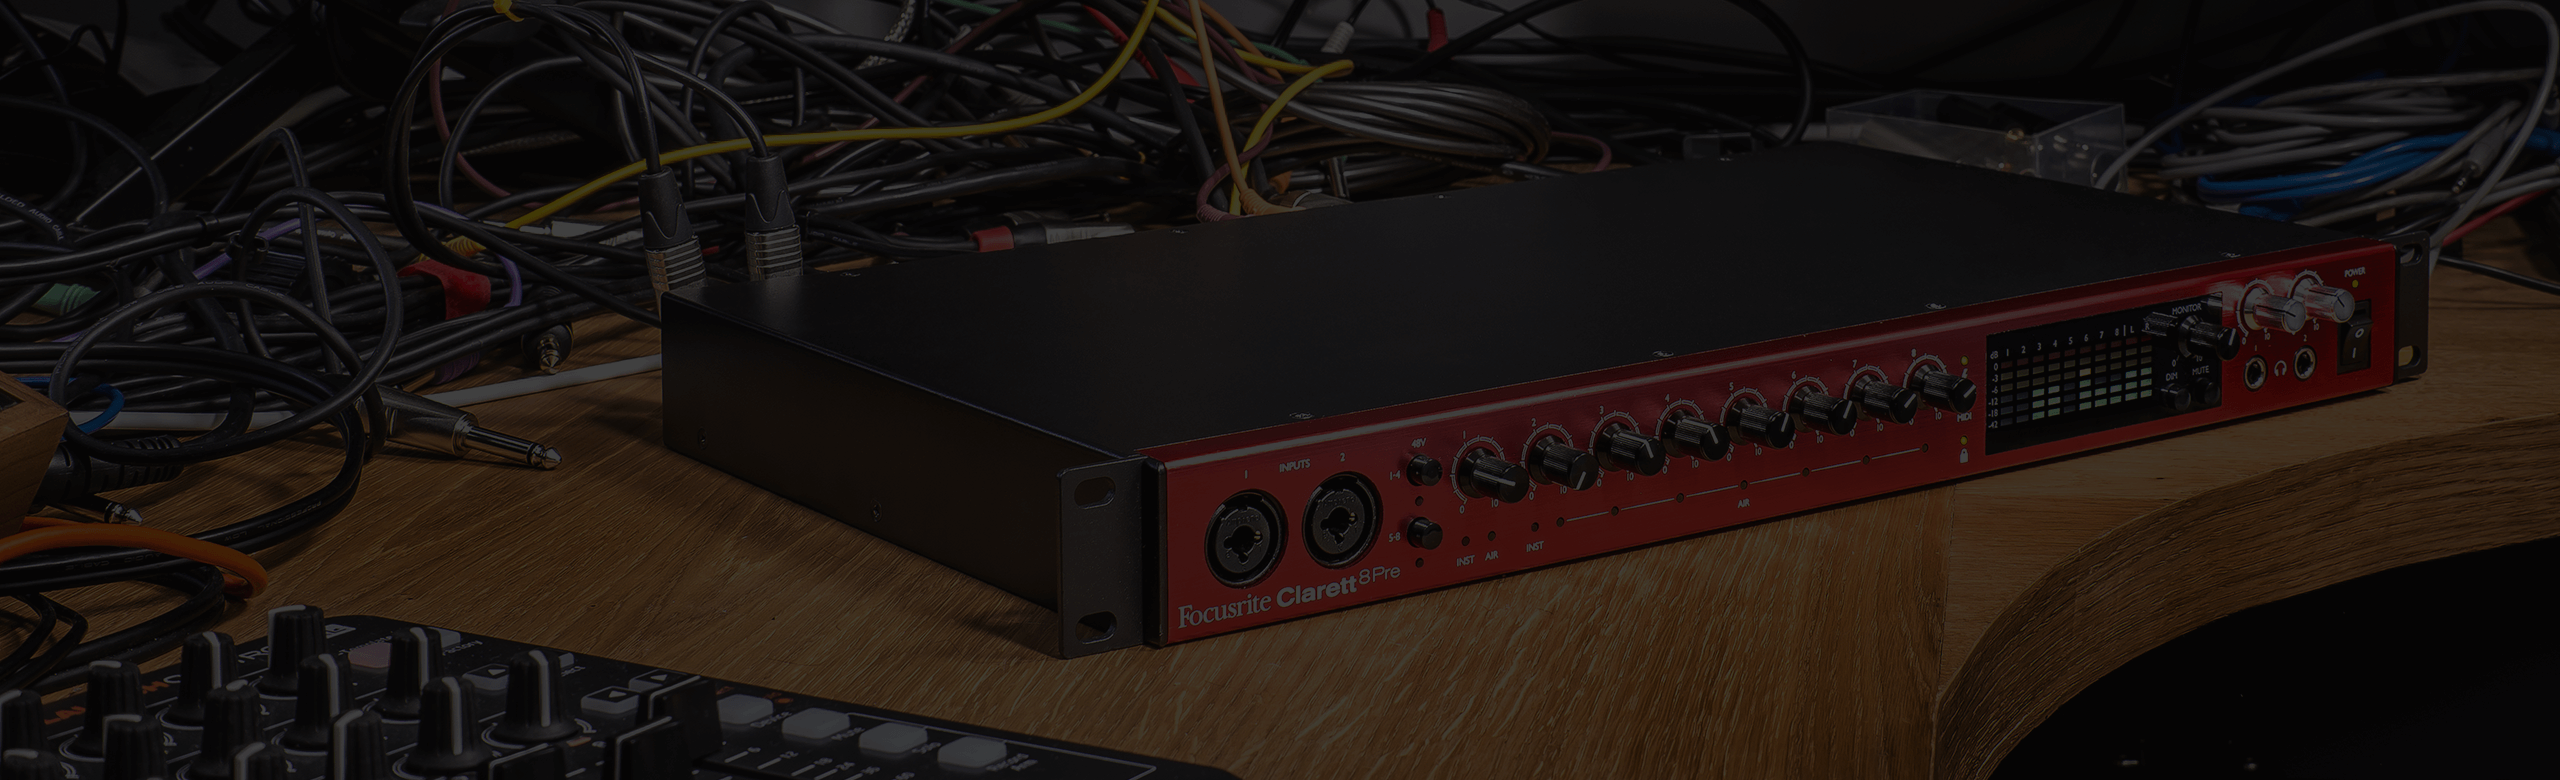 Clarett 8Pre in a studio environment